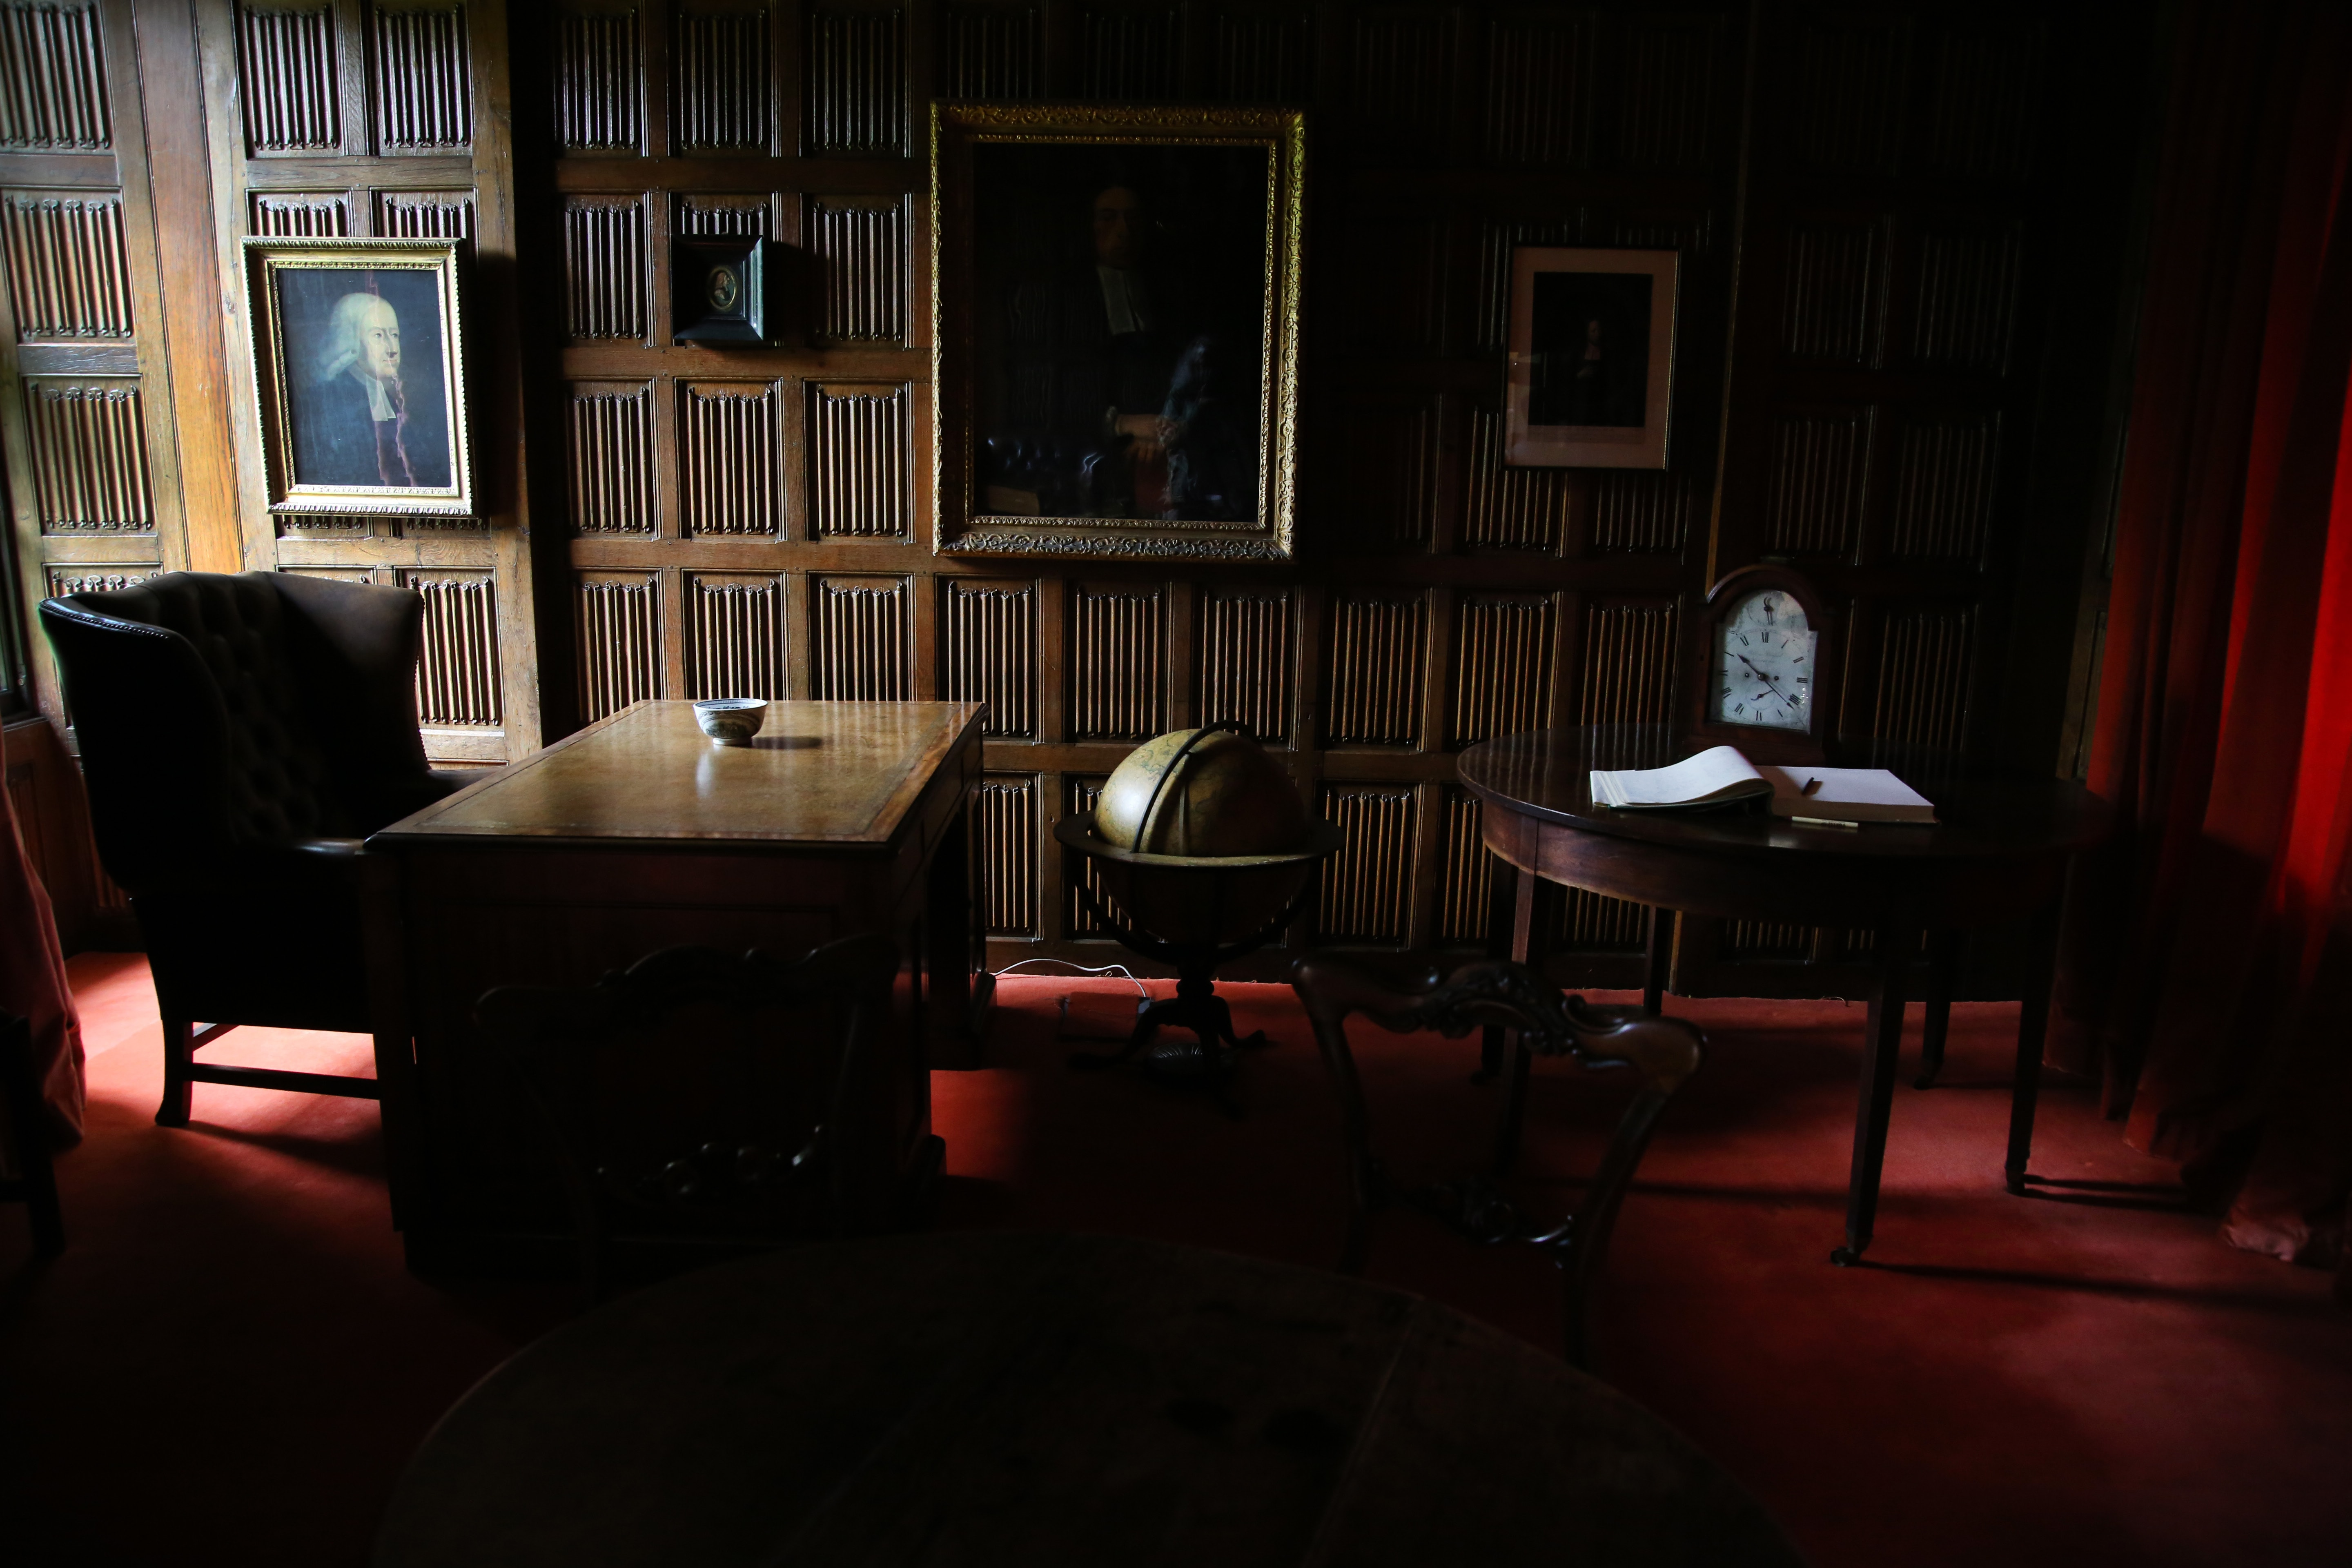 A room at Lincoln College, Oxford, is decorated as John Wesley would have had it. Wesley served as a fellow at Lincoln College from 1726 until his marriage in 1751. Photo by Kathleen Barry, United Methodist Communications